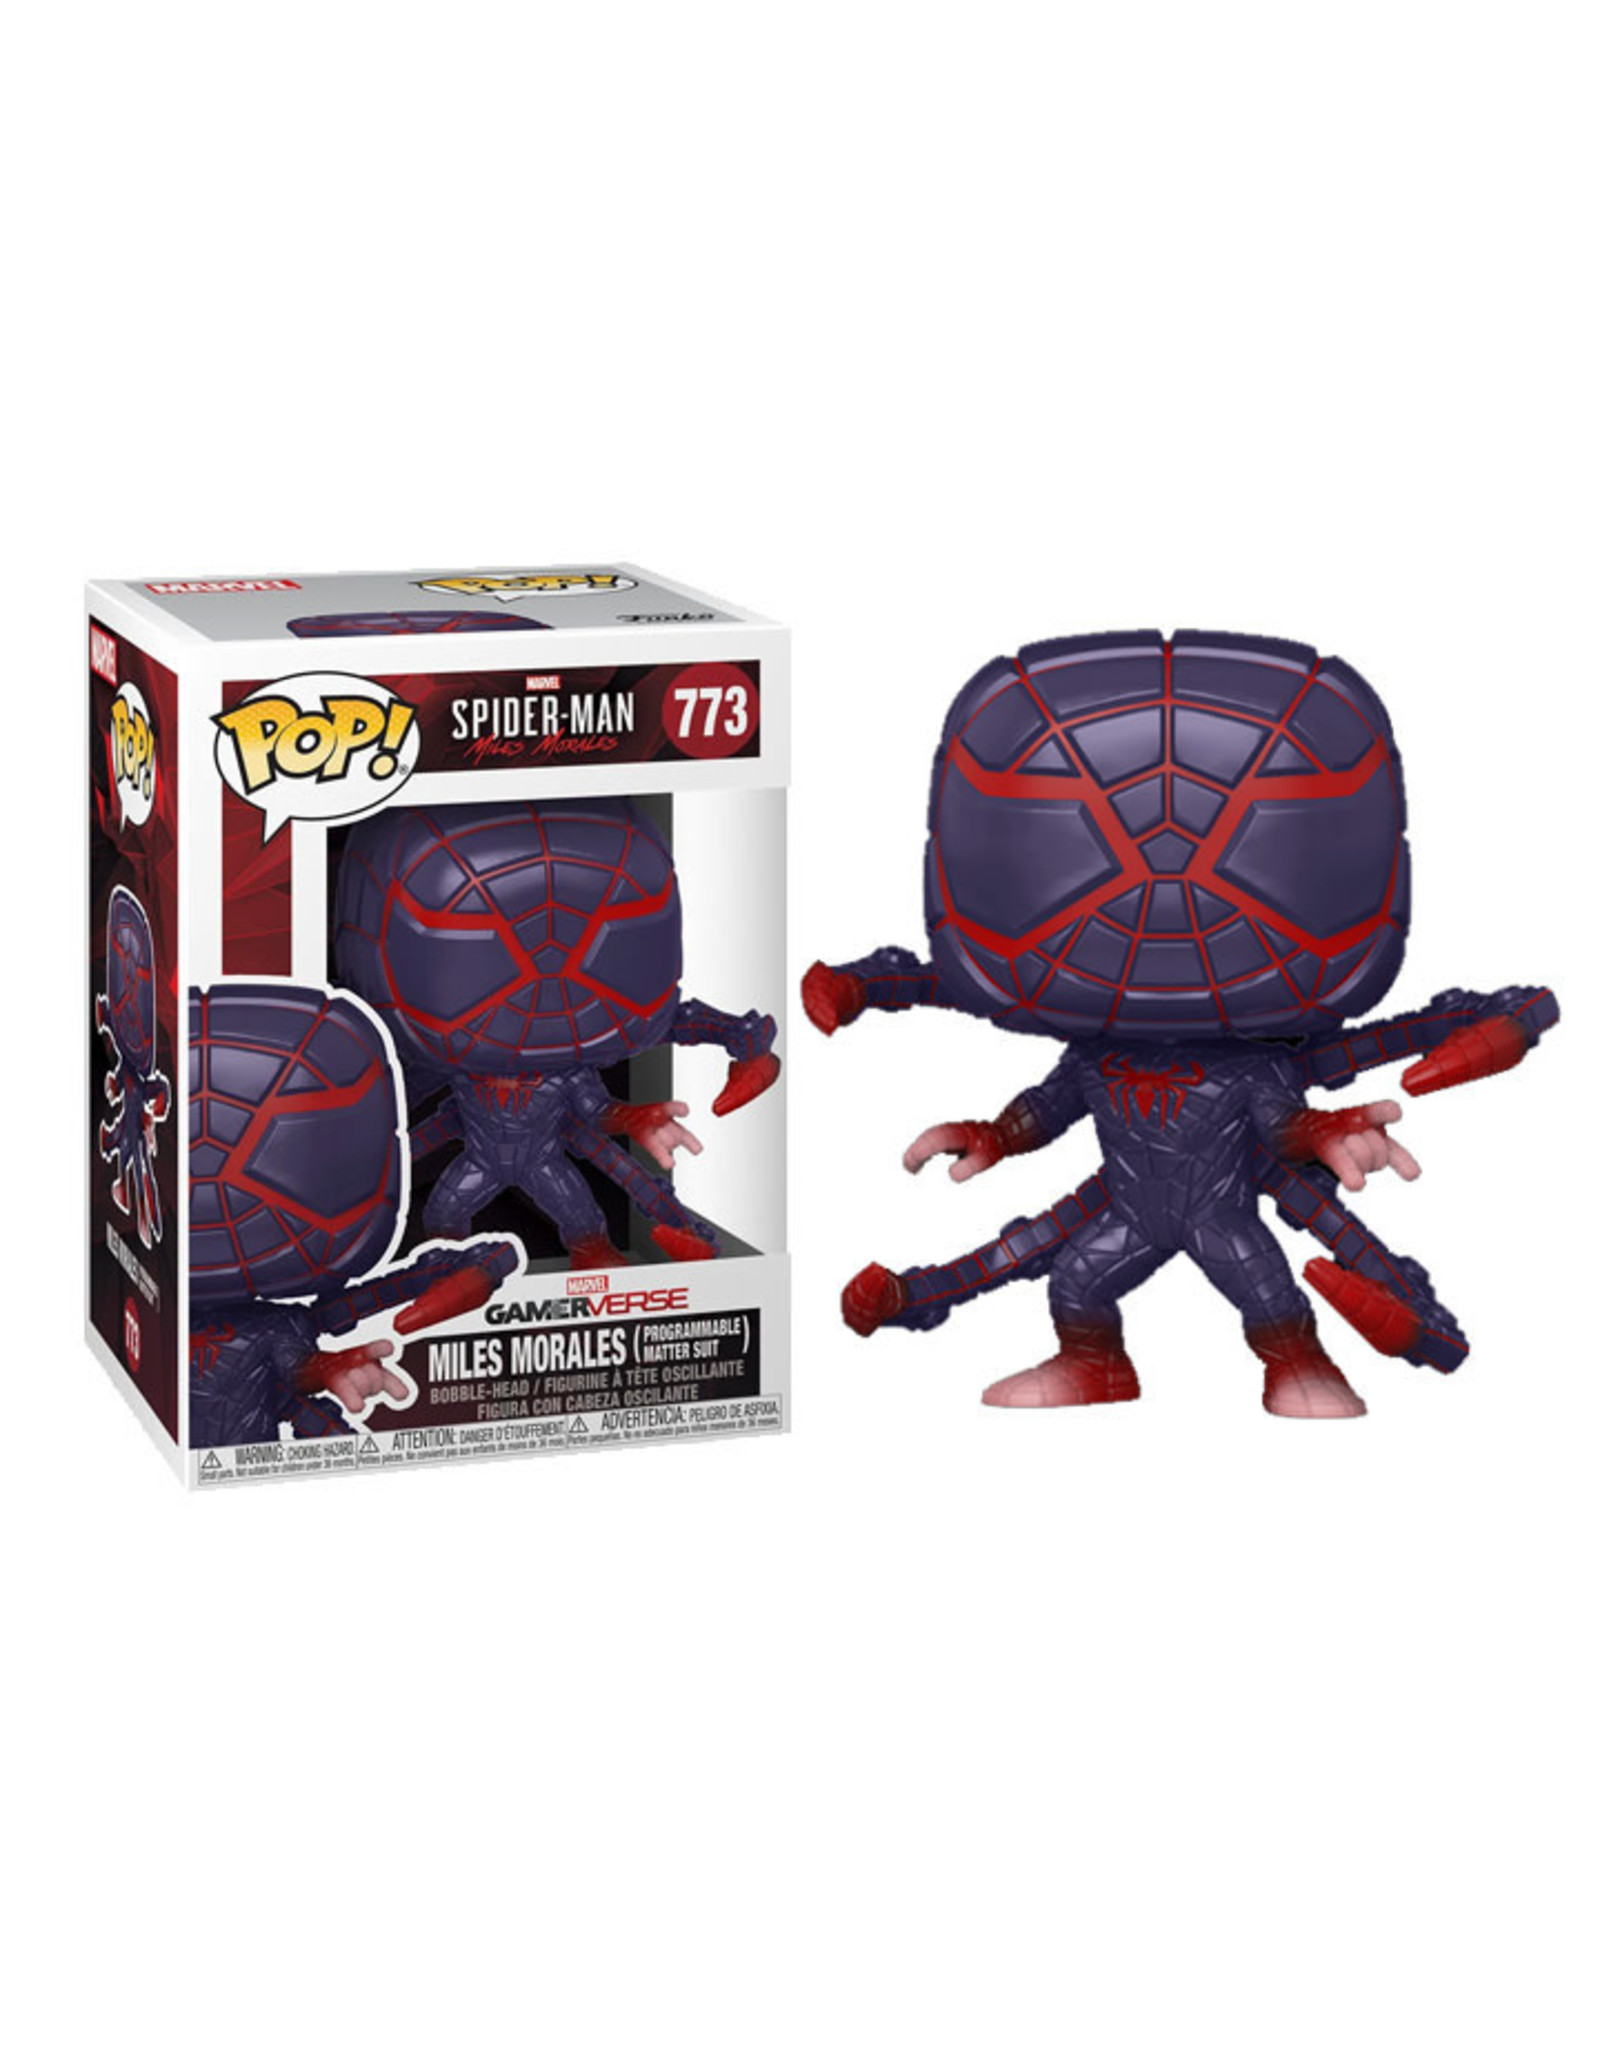 FUNKO POP SPIDER-MAN MILES MORALES PROGRAMMABLE MATTER SUIT